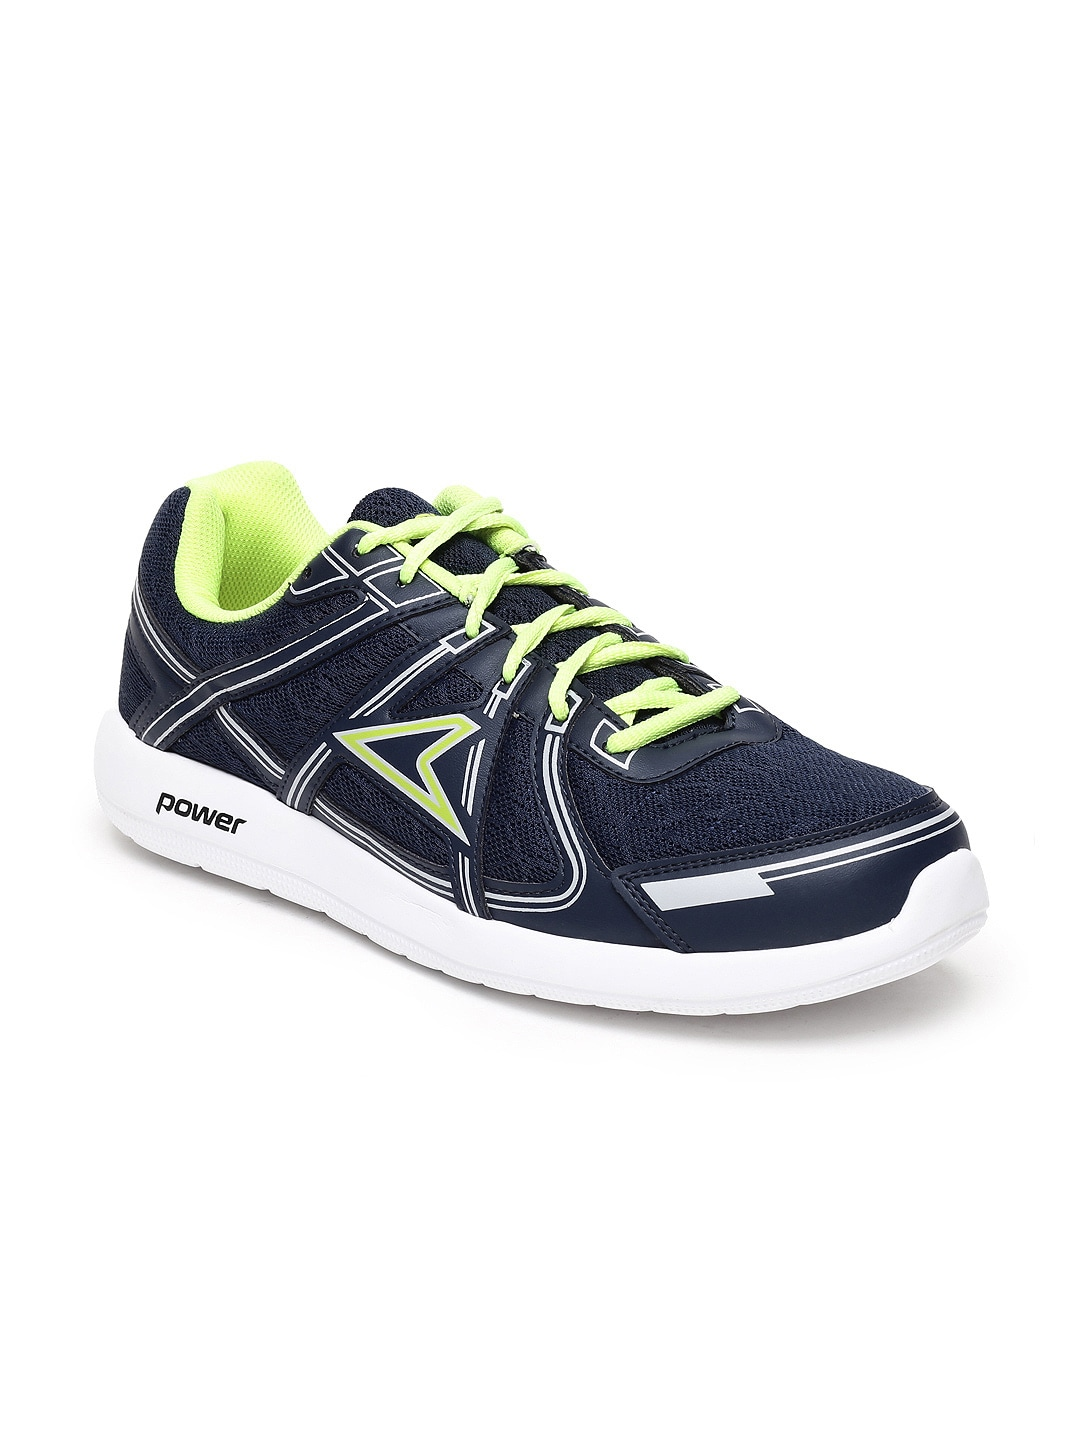 f054707a7946 Bata Power Shoes - Buy Power Shoes Online in India